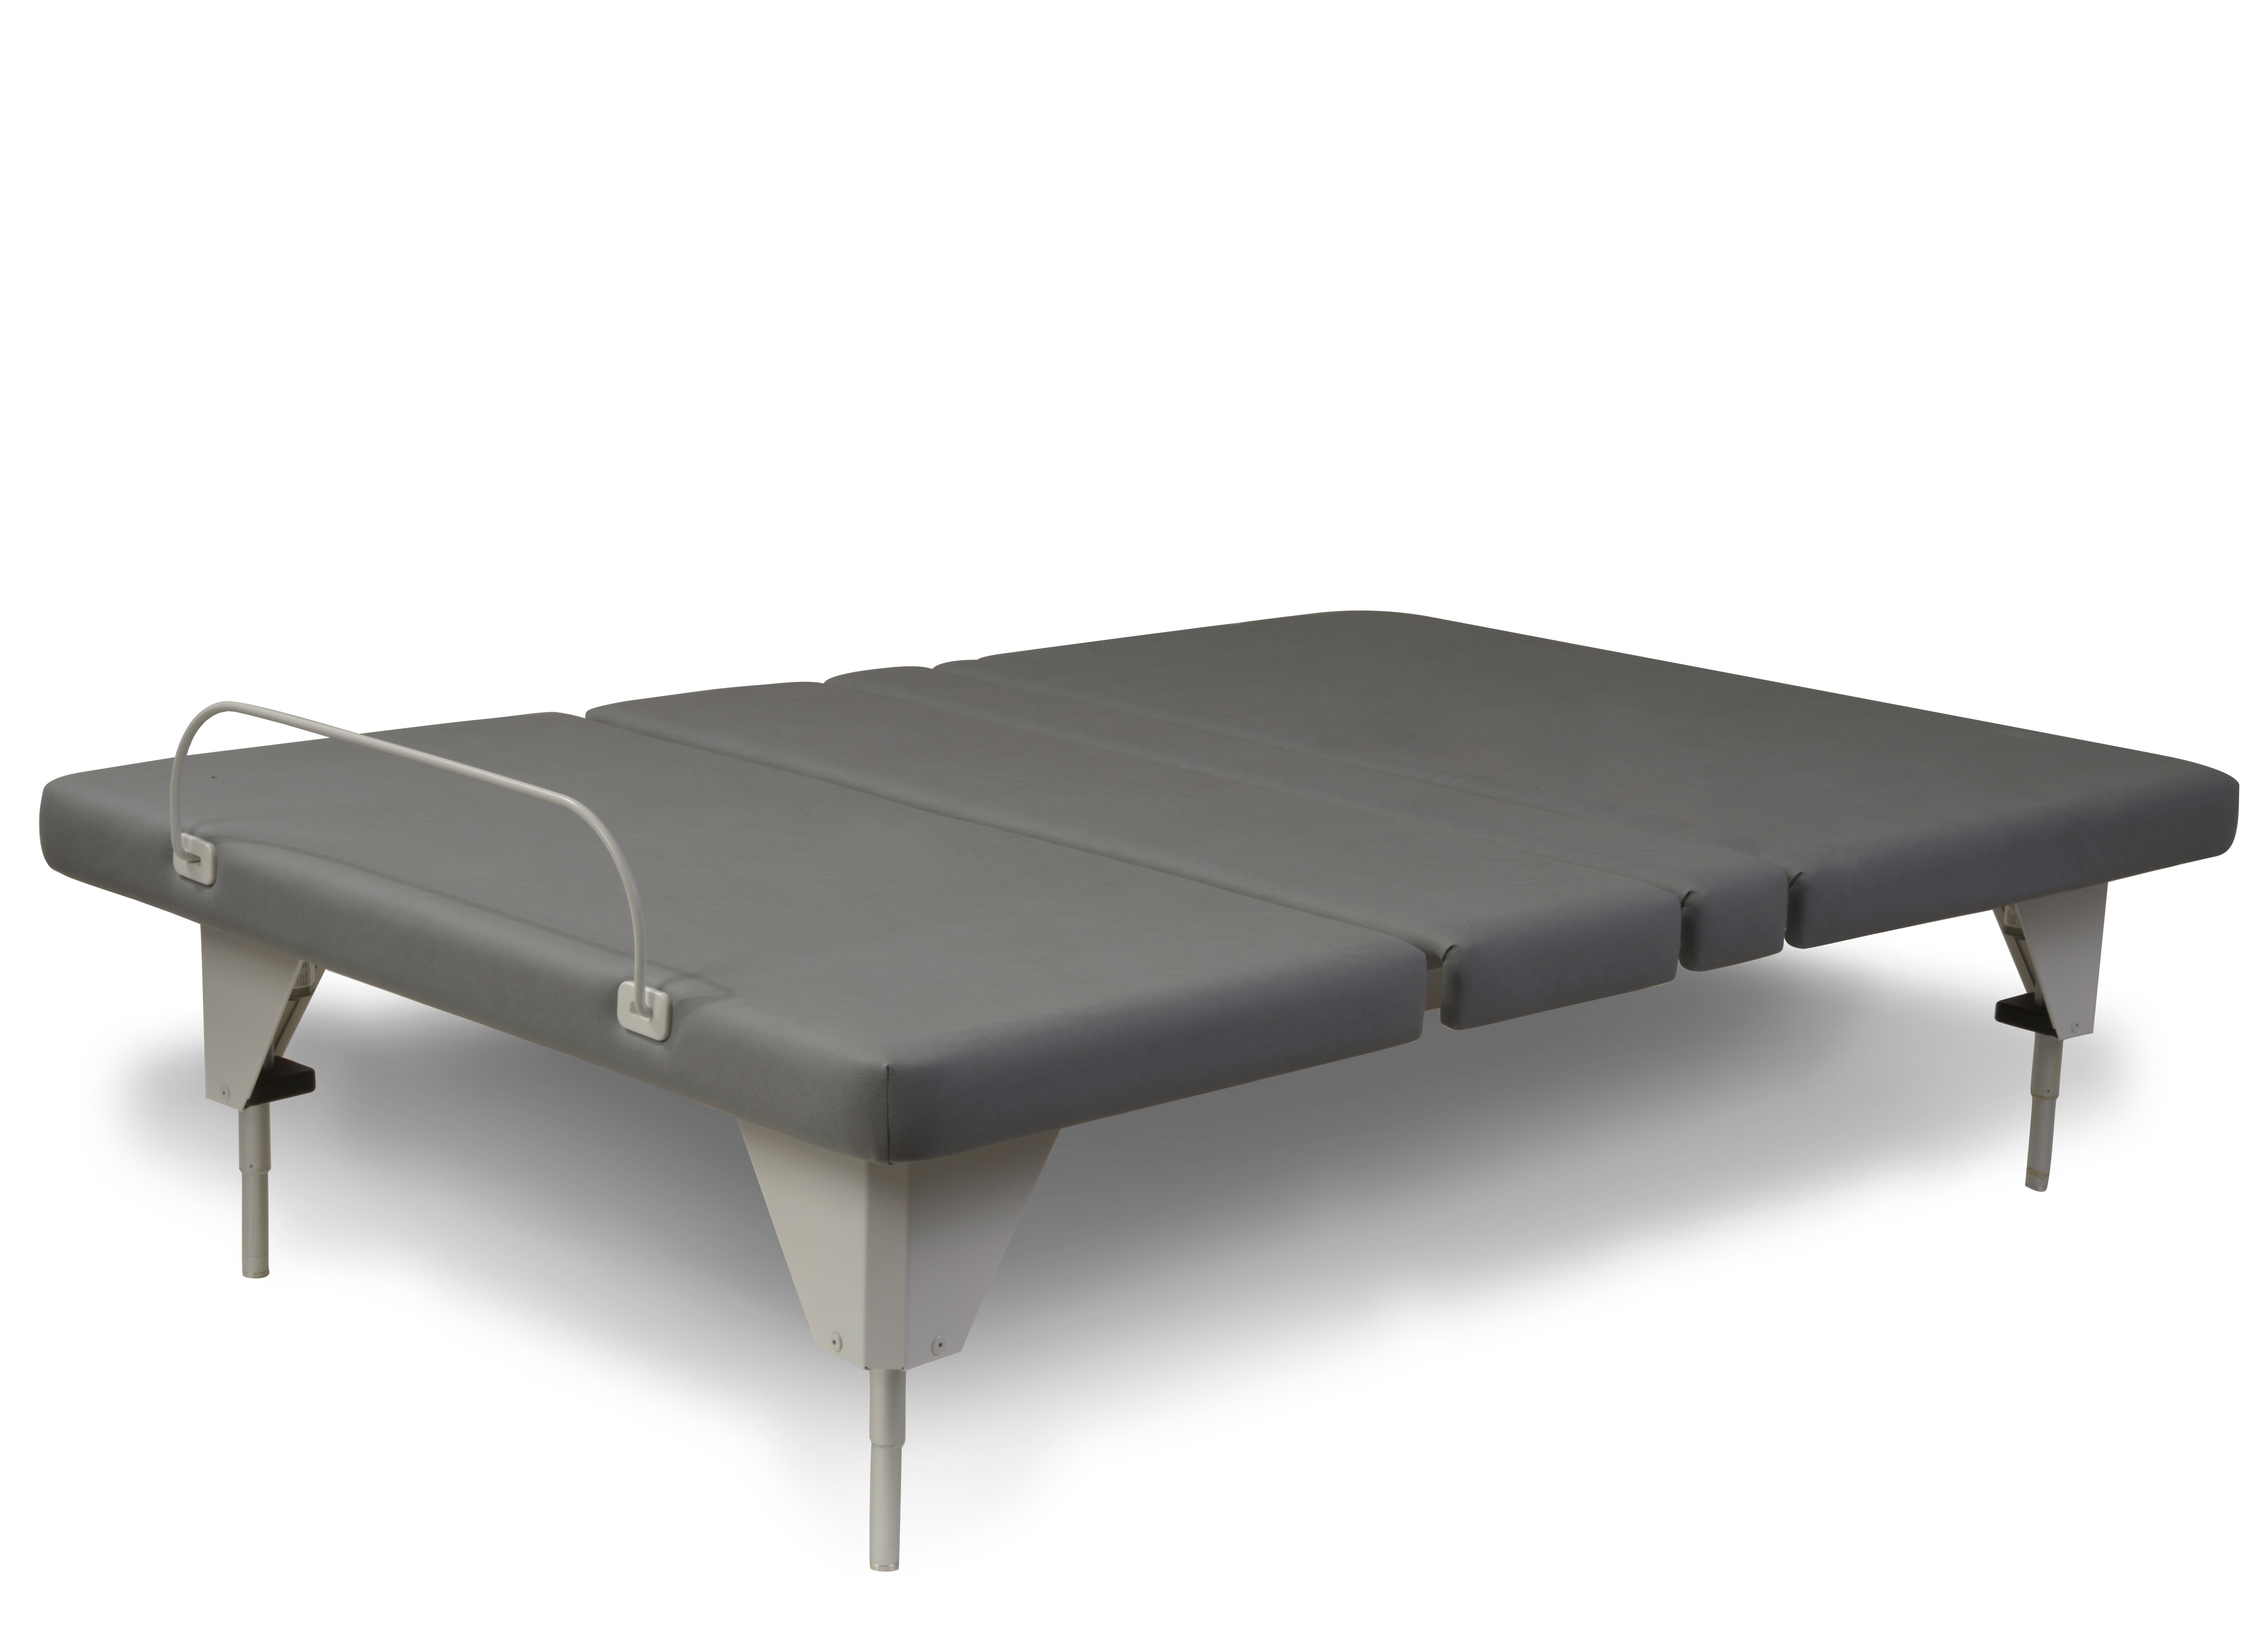 Assured Comfort Hi-Low Adjustable Bed - Signature Queen - Up Position - Foundation only